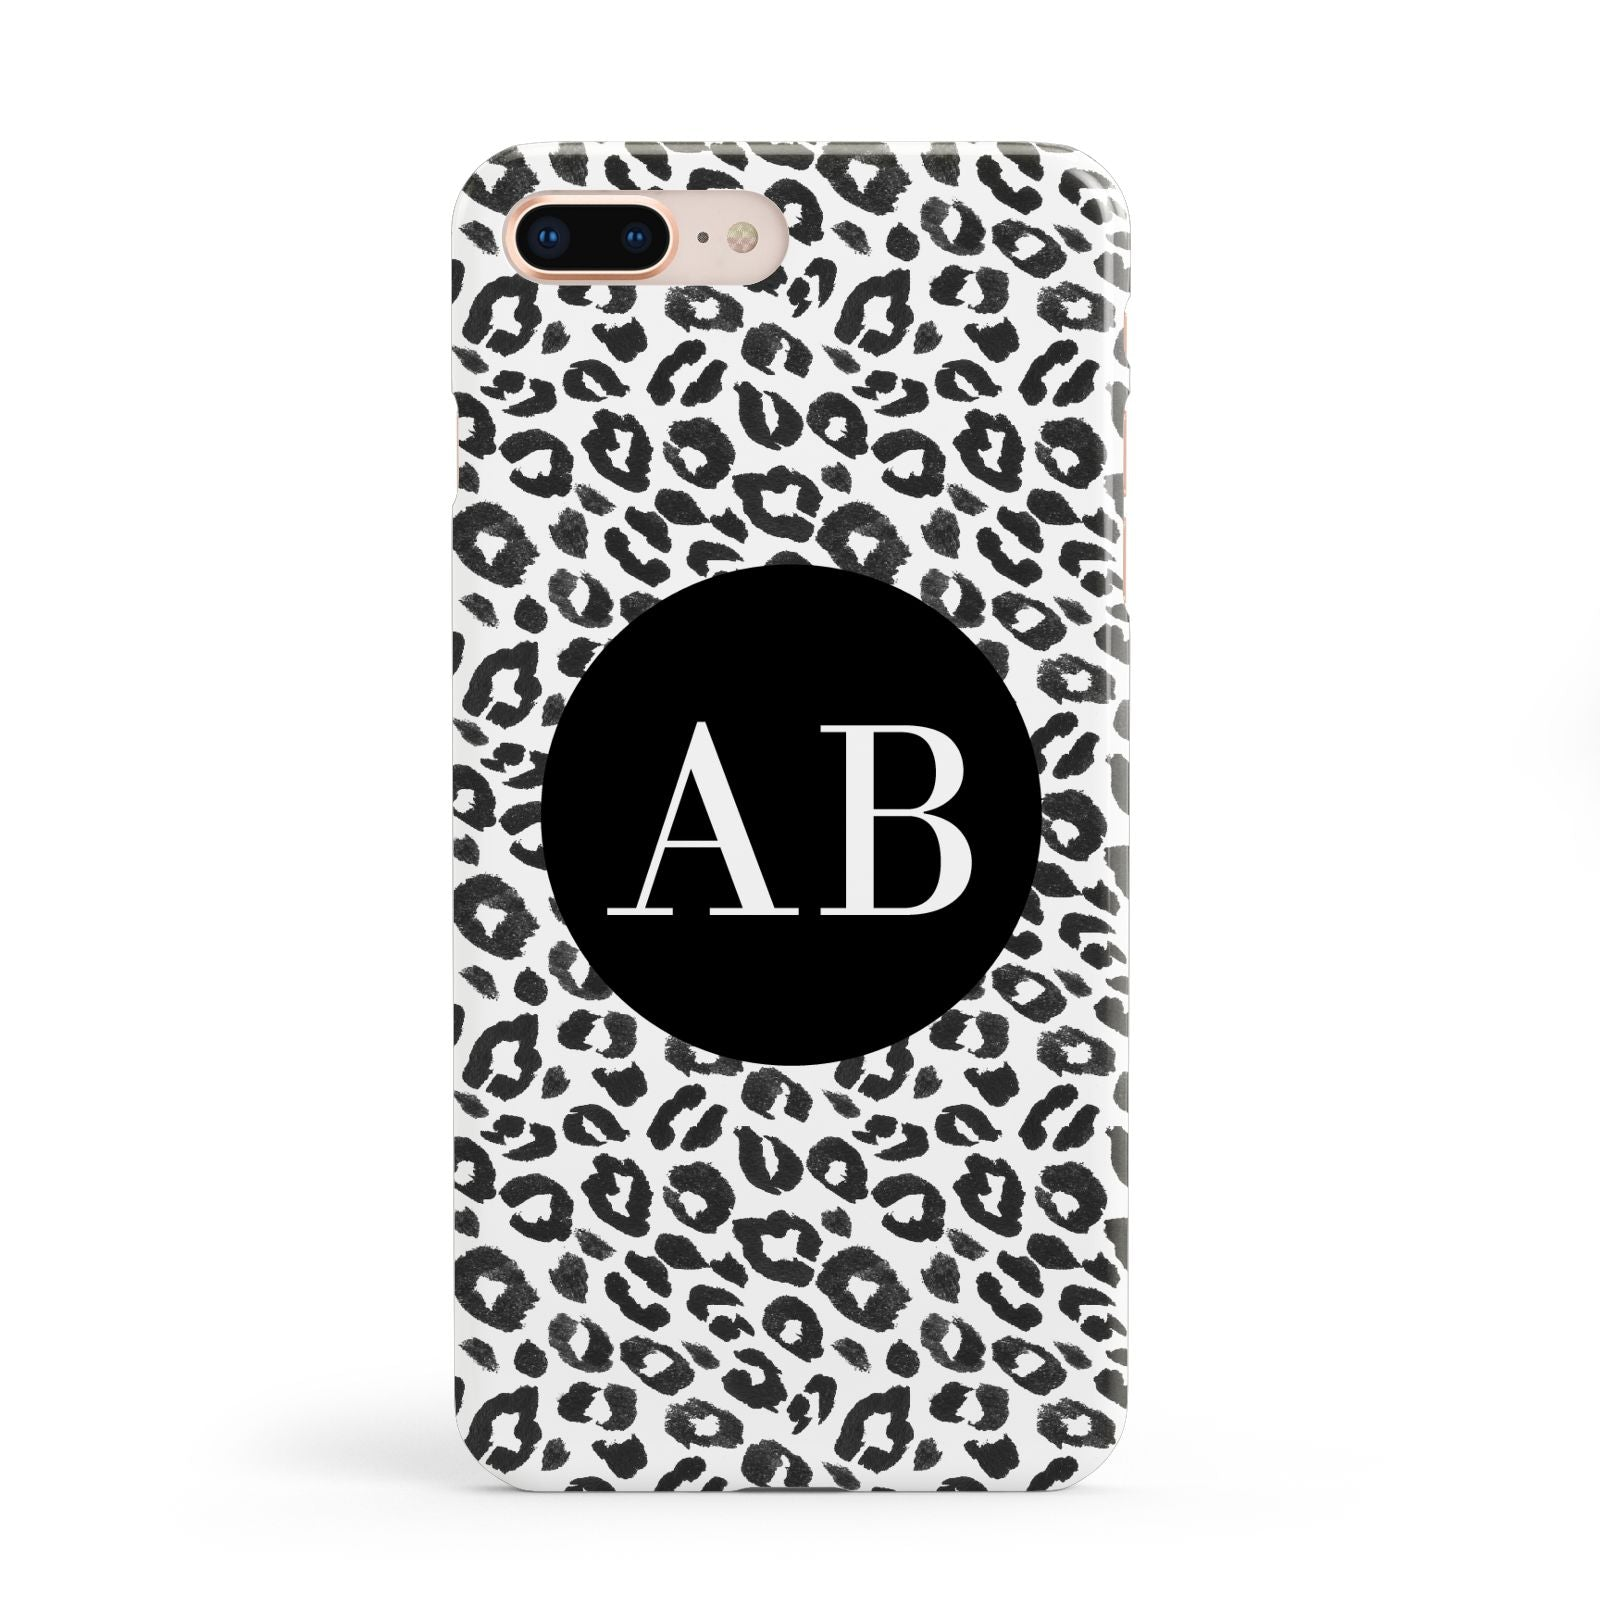 Leopard Print Black and White Apple iPhone 8 Plus Case